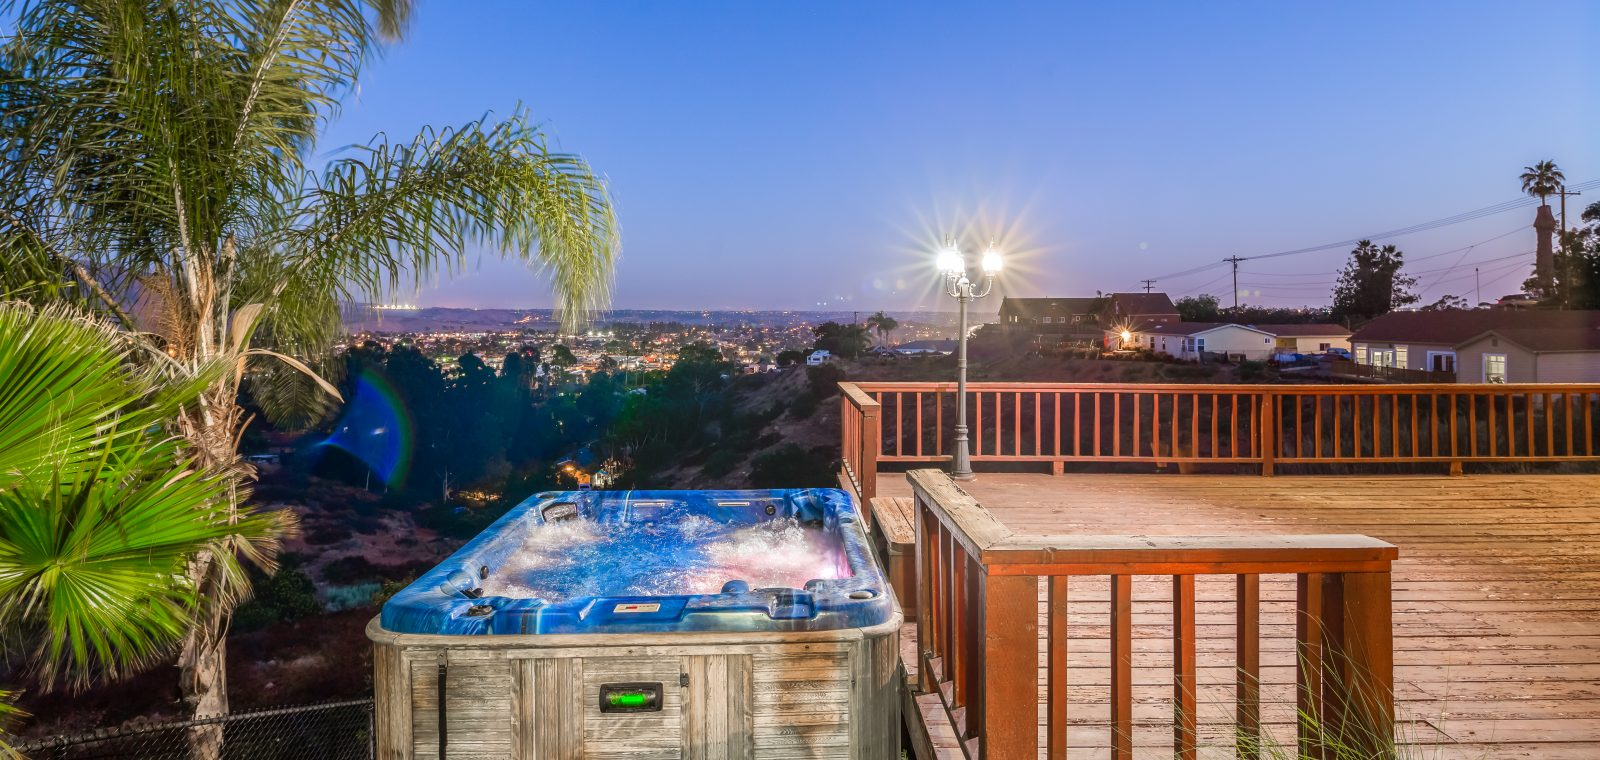 Spa - Blumenfeld Group | San Diego Homes for Sale